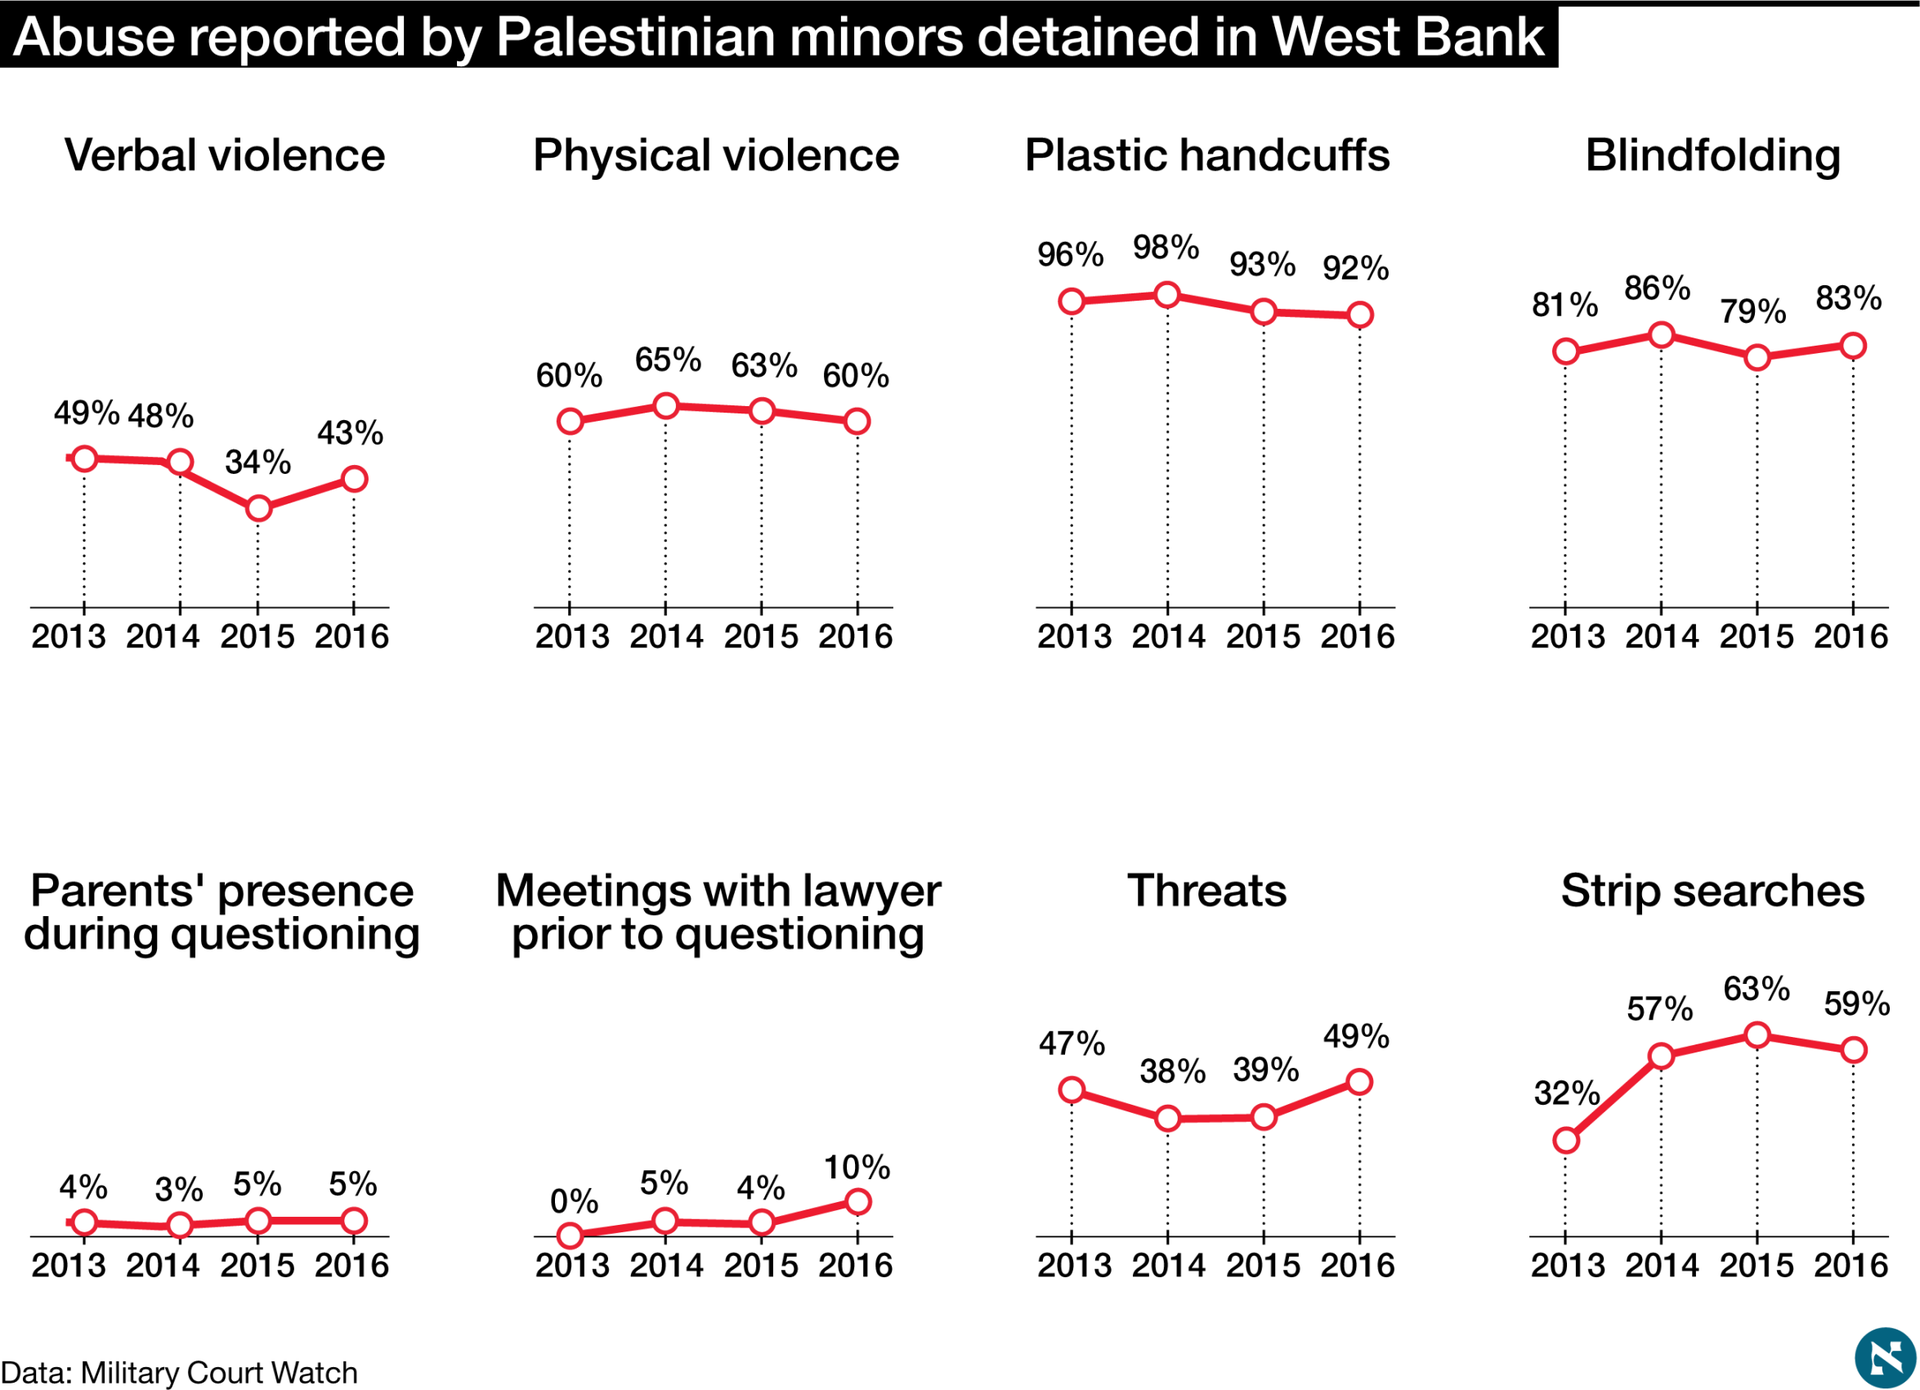 Israeli detention conditions as reported by Palestinian minors.